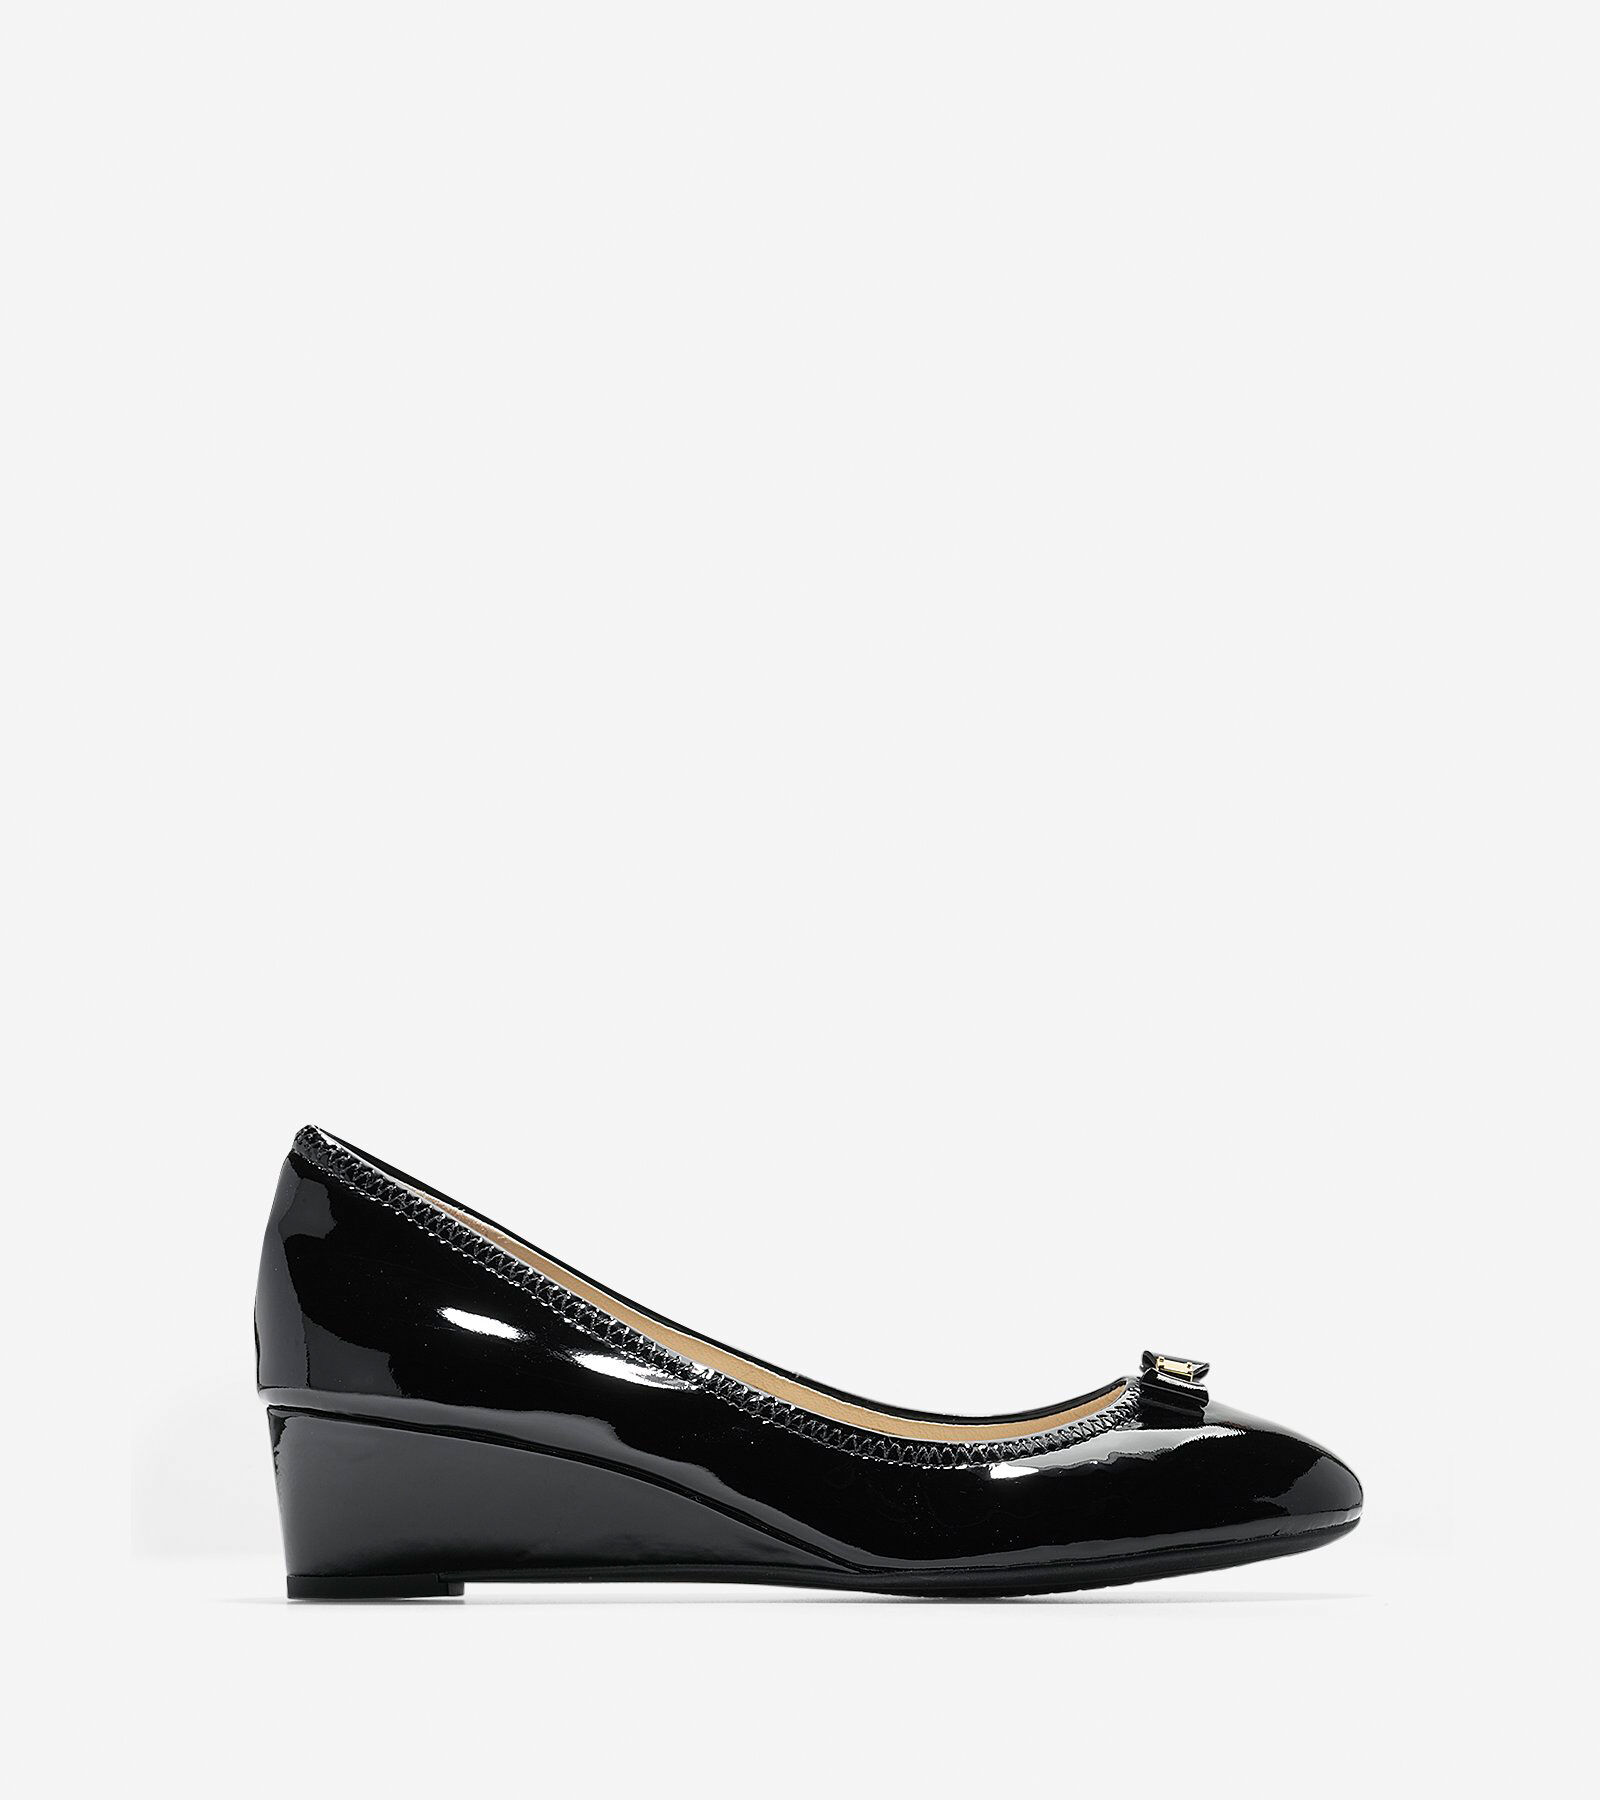 Women Cole Haan Oxford Shoes Black Patent Leather Bow Shoes NEW